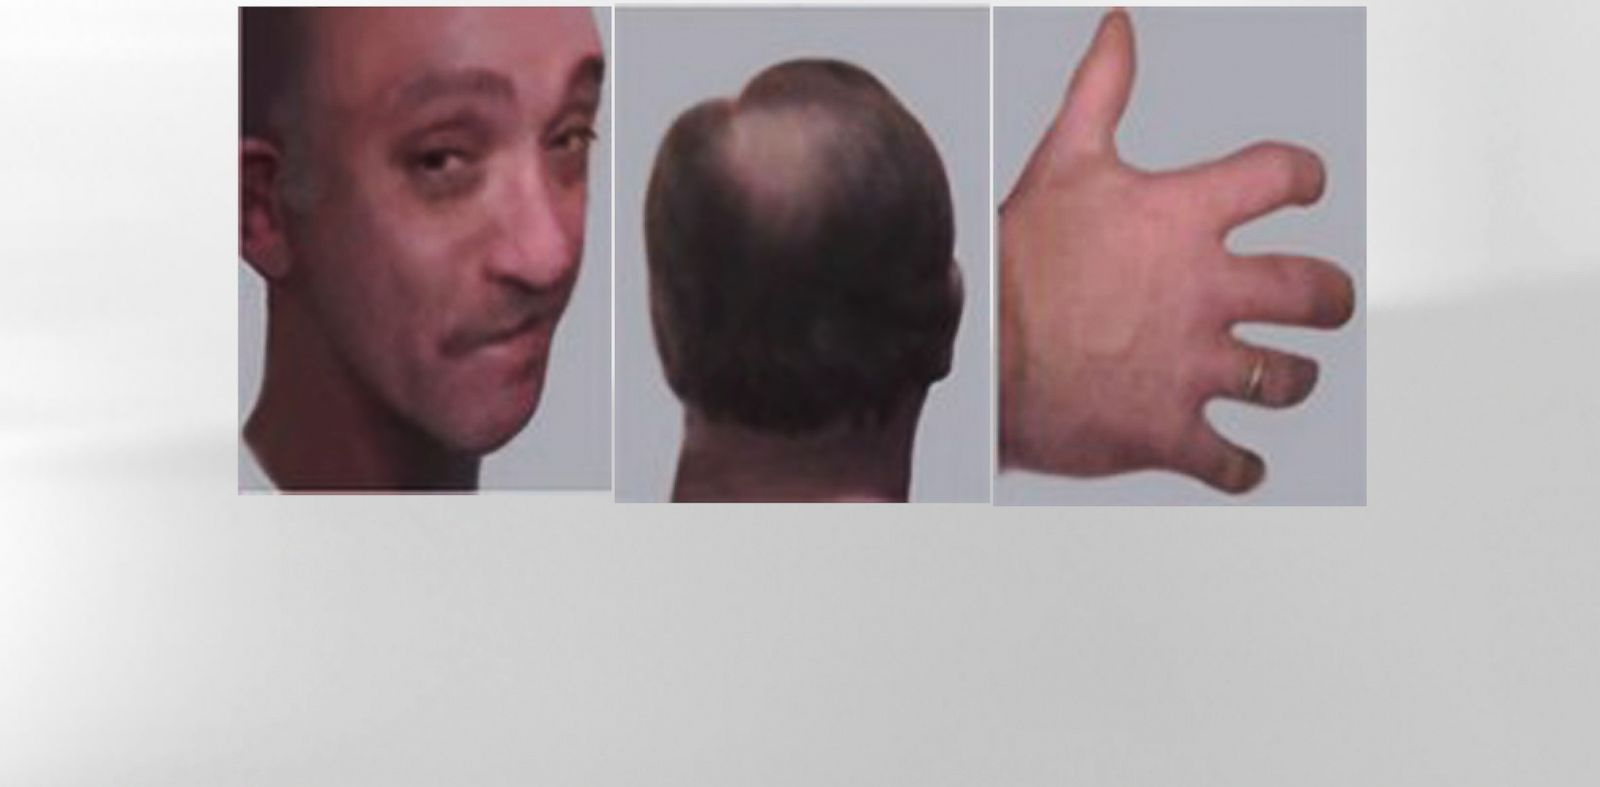 PHOTO: An unknown individual known as John Doe 27 seen here in this photo is described as a white male, likely between the ages of 40 and 50, with brown hair, graying sideburns, and a bald spot.